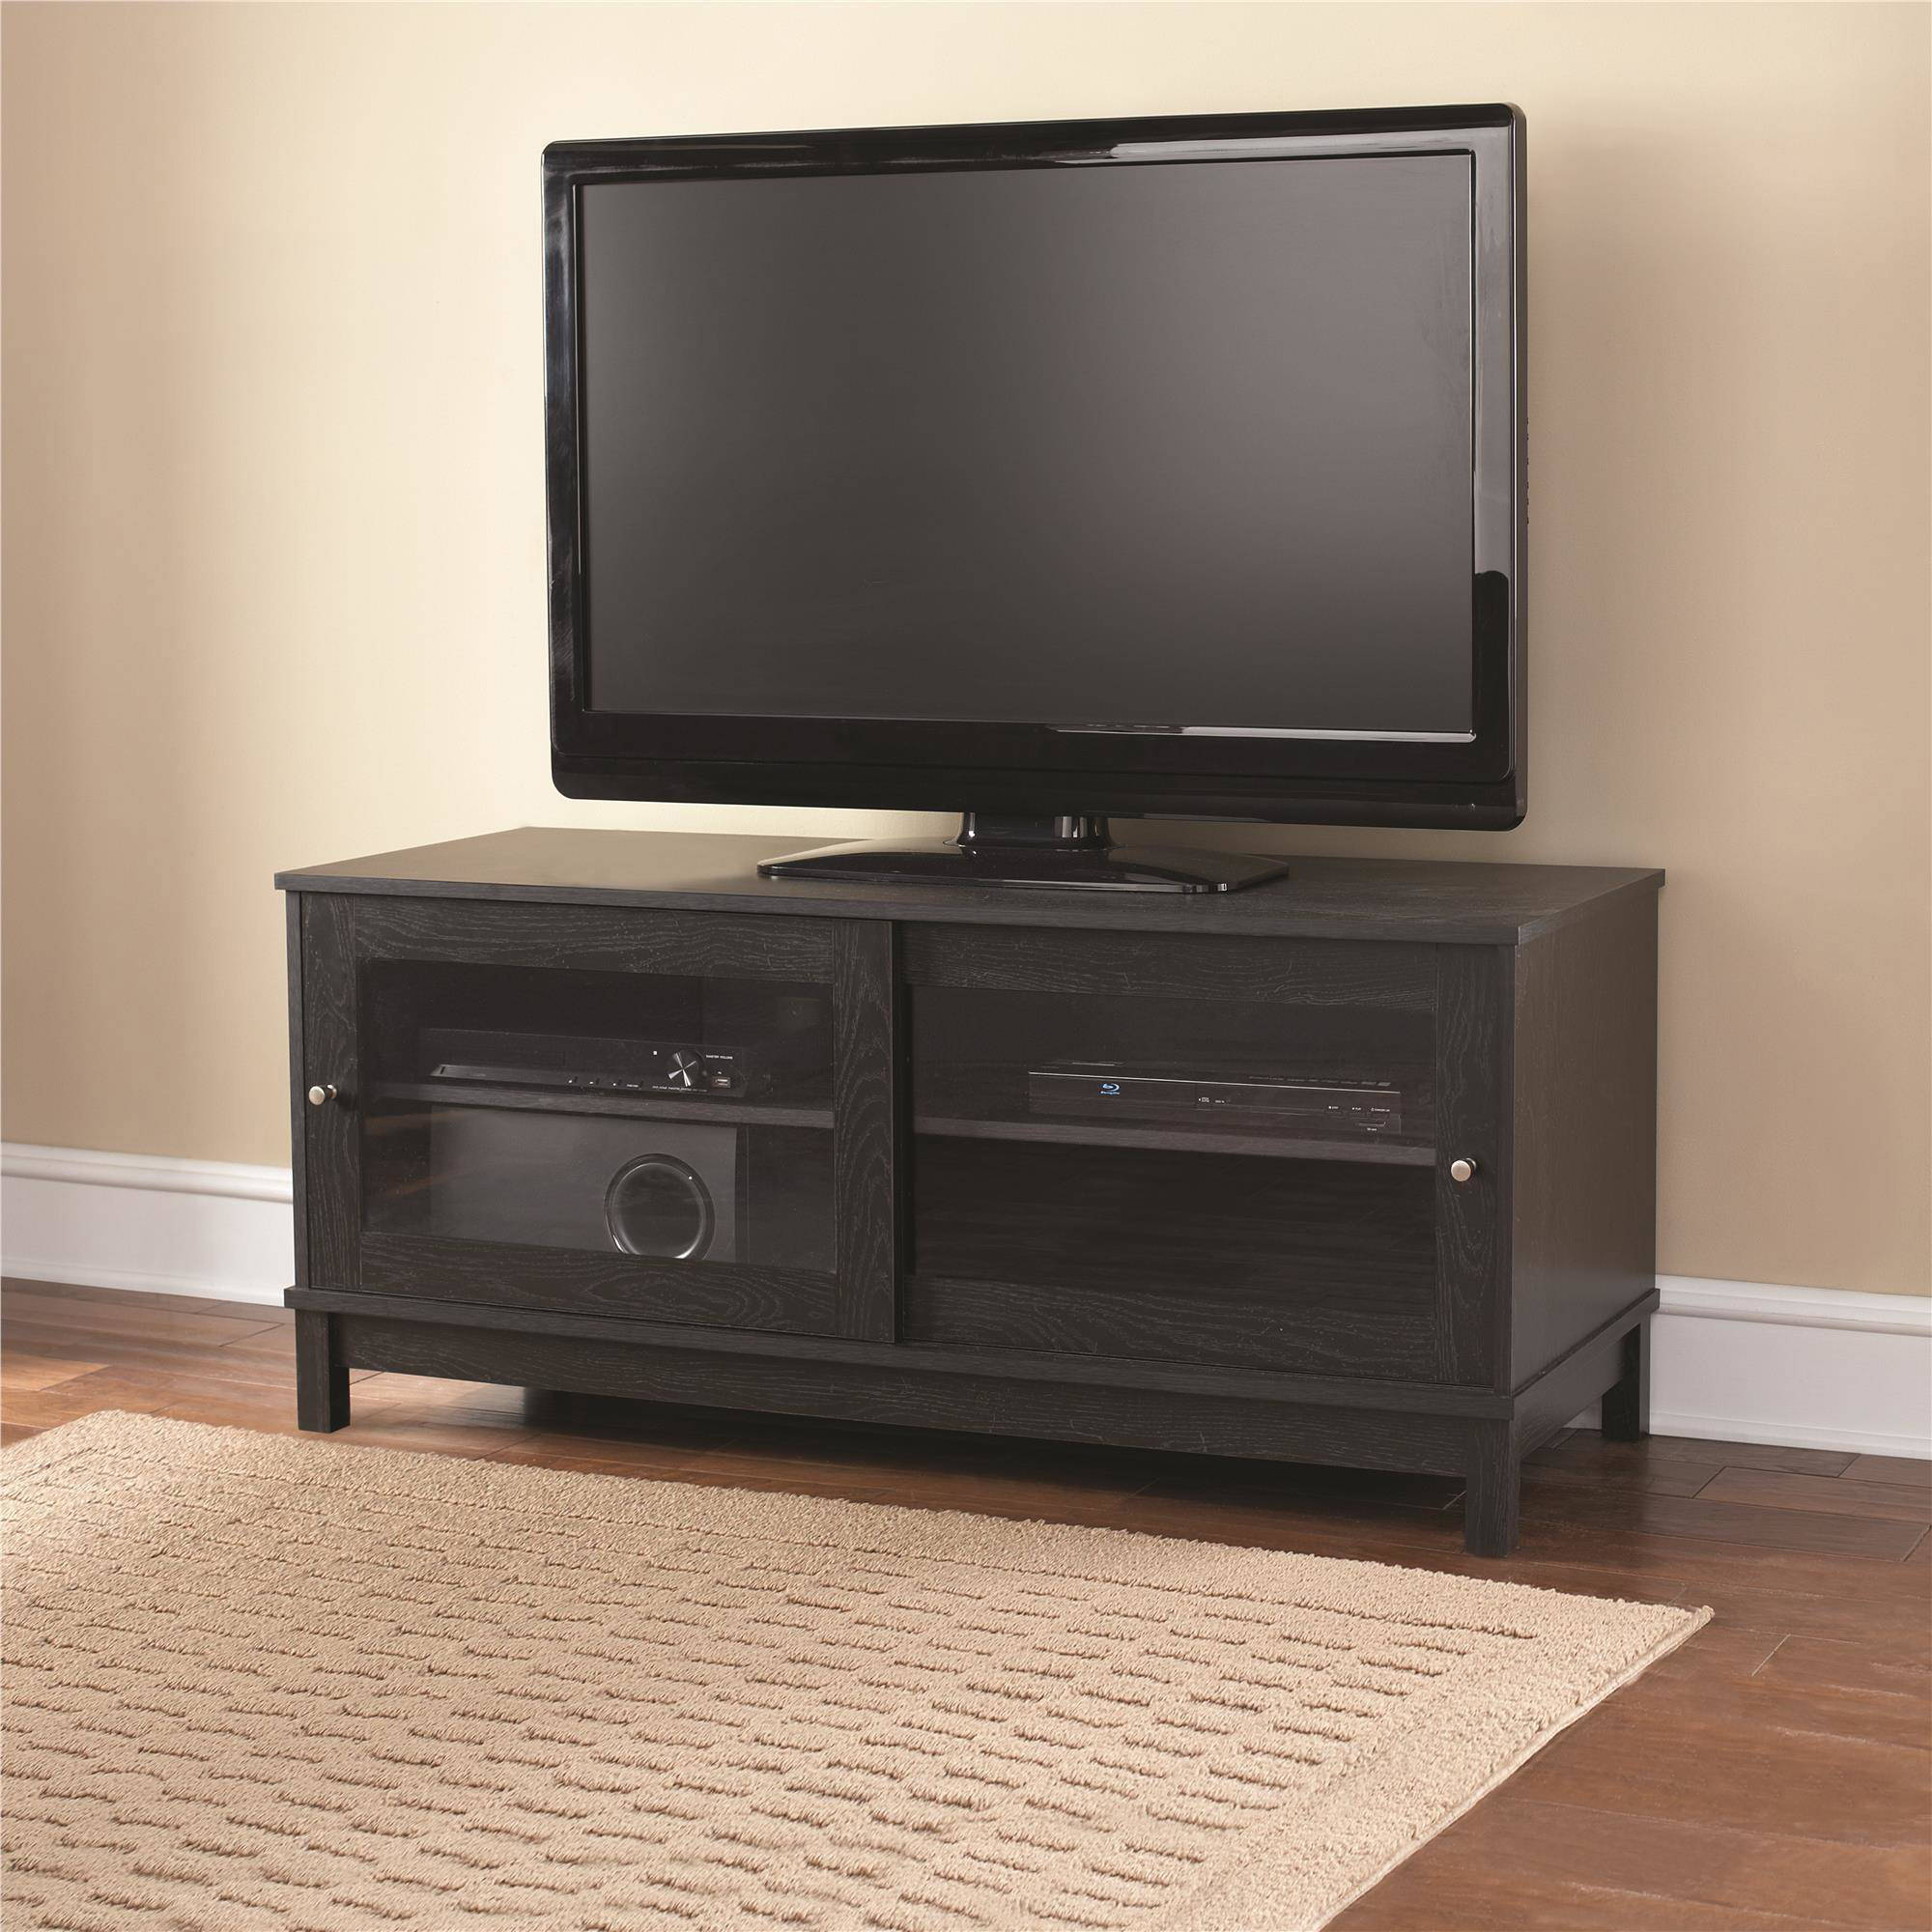 tv stand with doors Mainstays 55